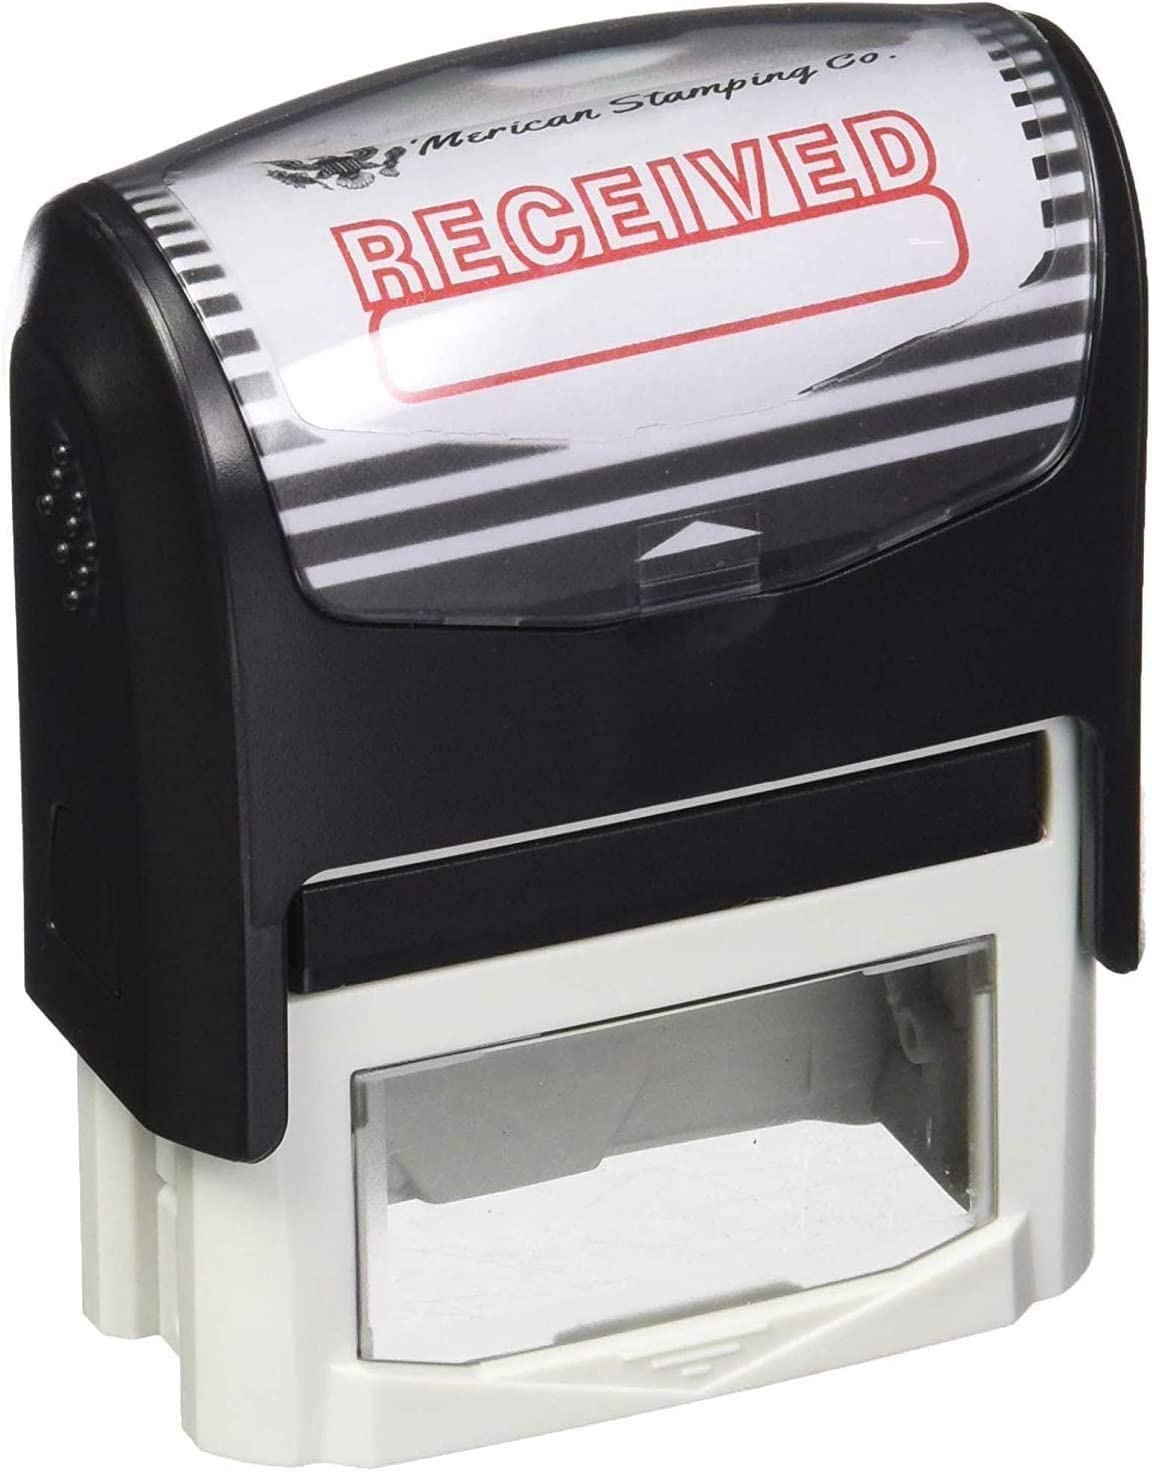 Received Stamp Received Self Inking Rubber Stamp Office Stamp (Stamp Only)